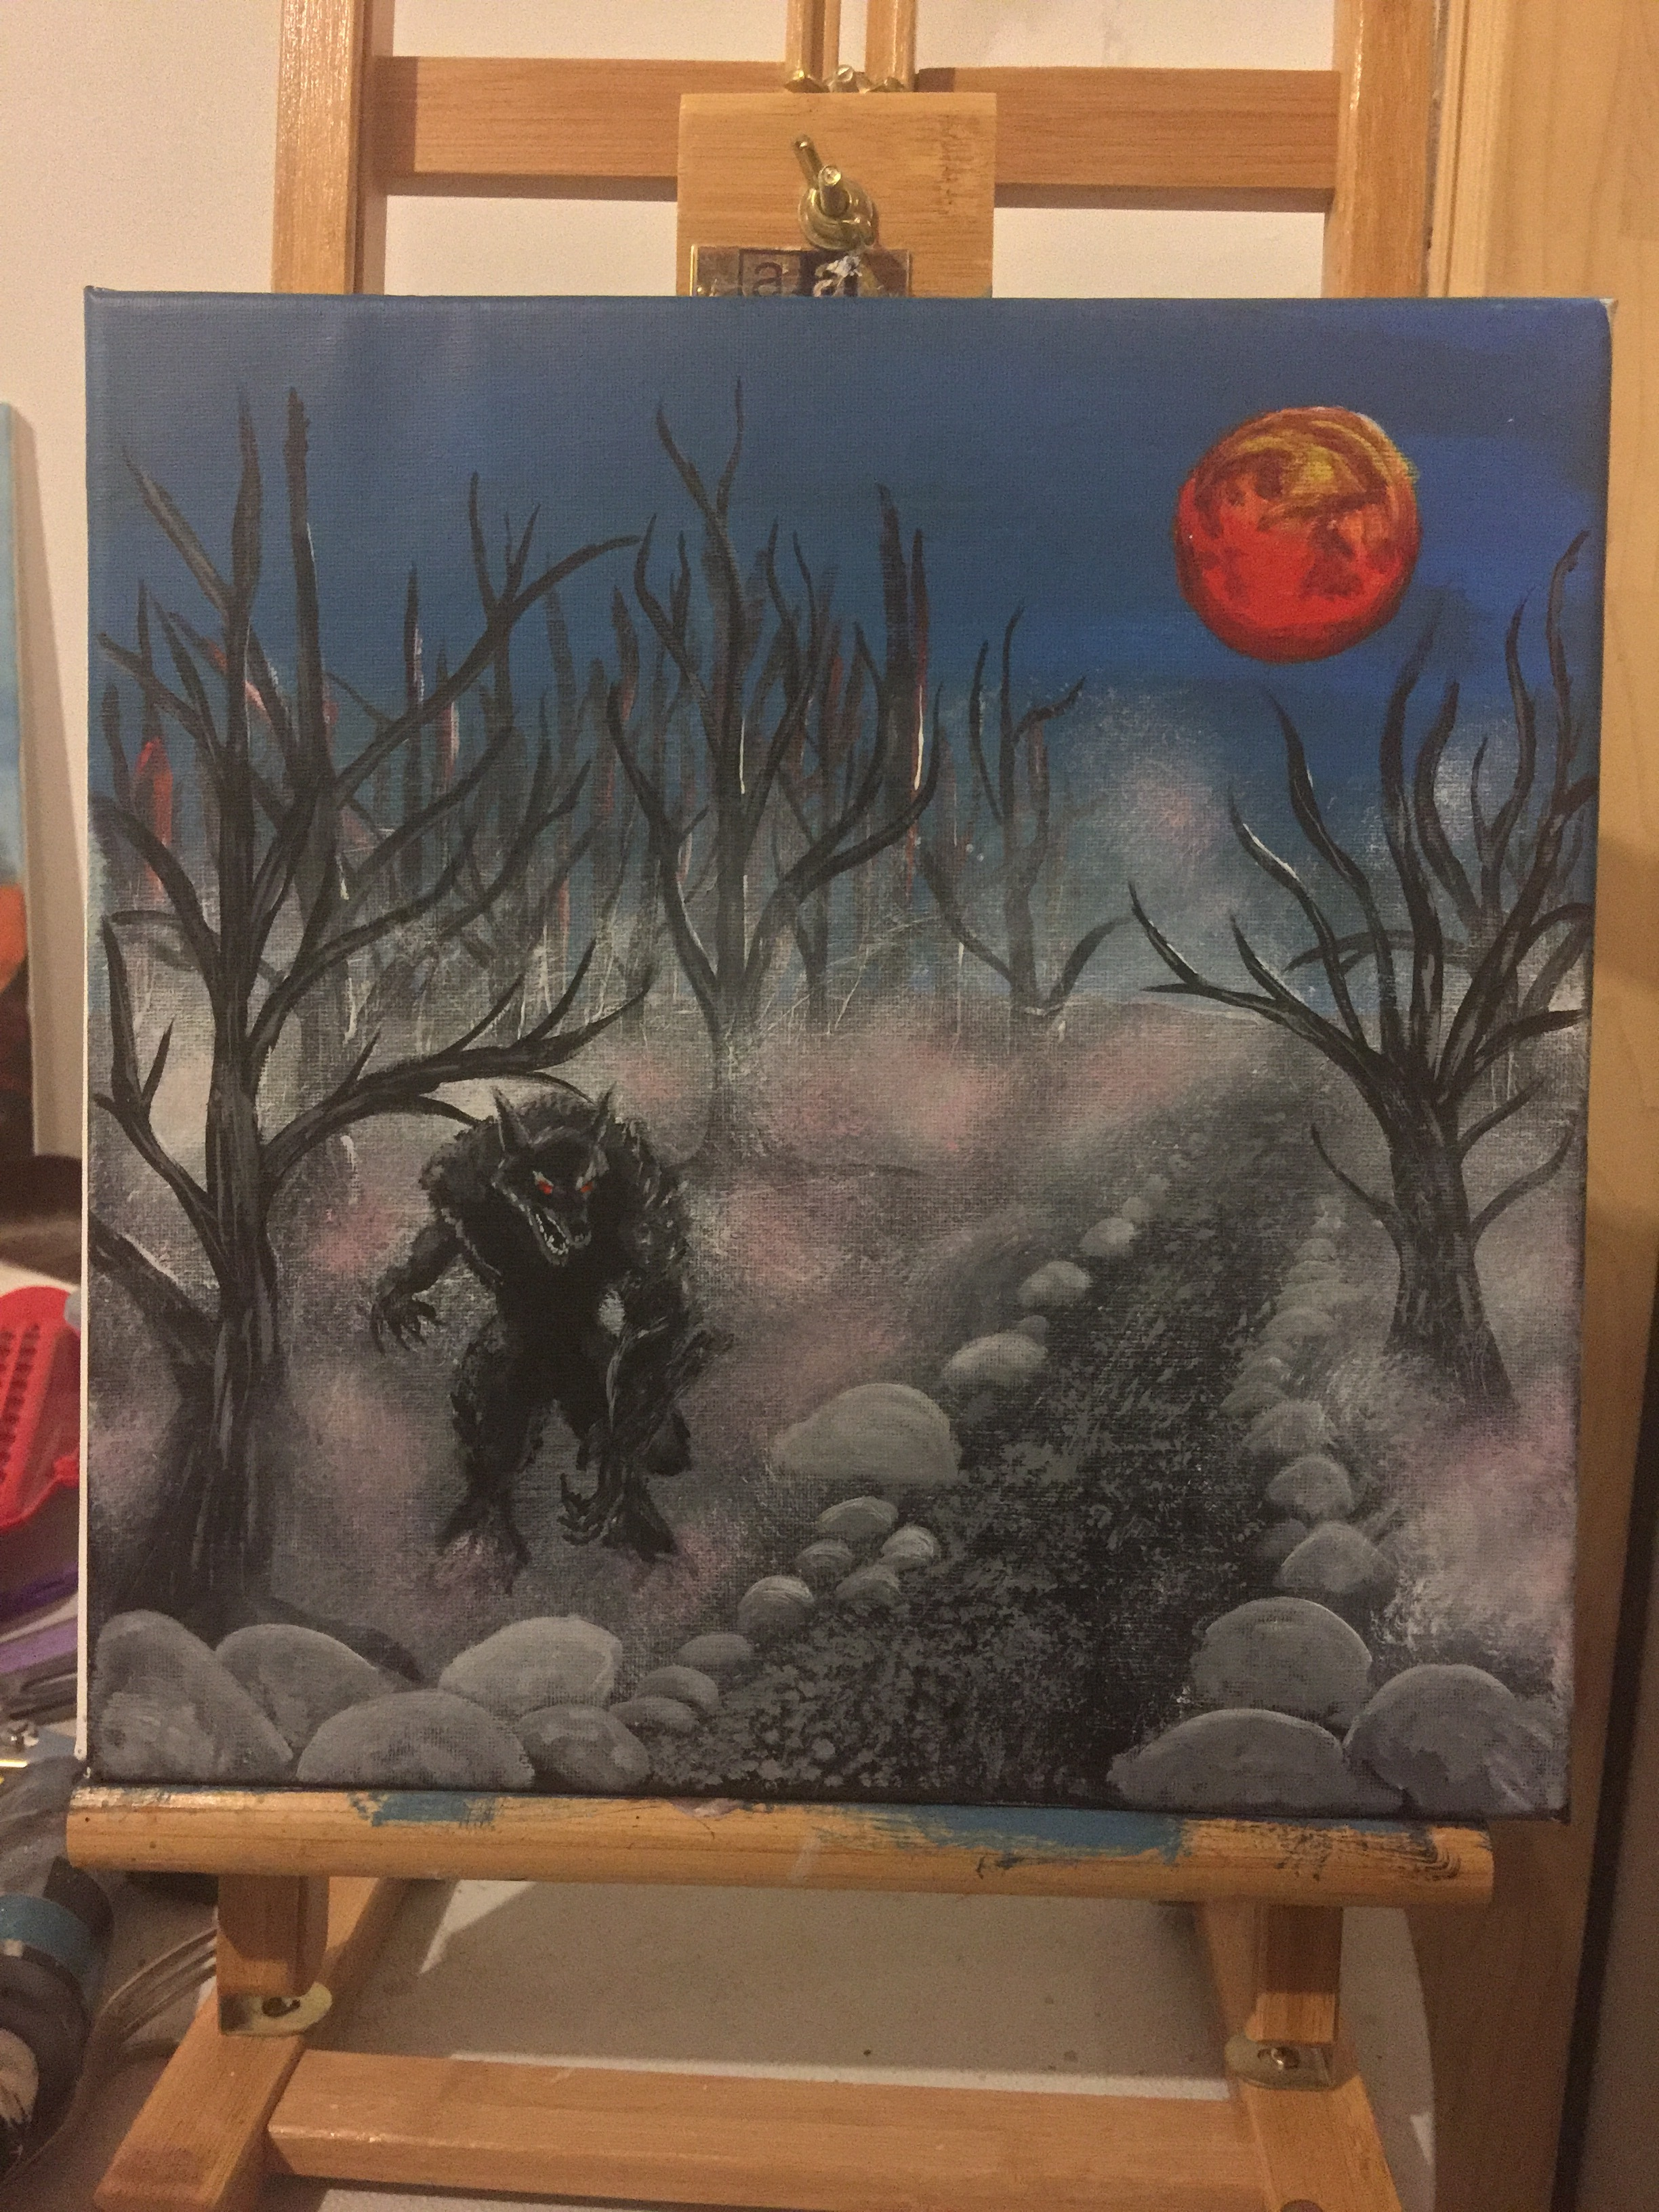 FAILED'S PAINTING HE DID WHILE ON A PODCAST